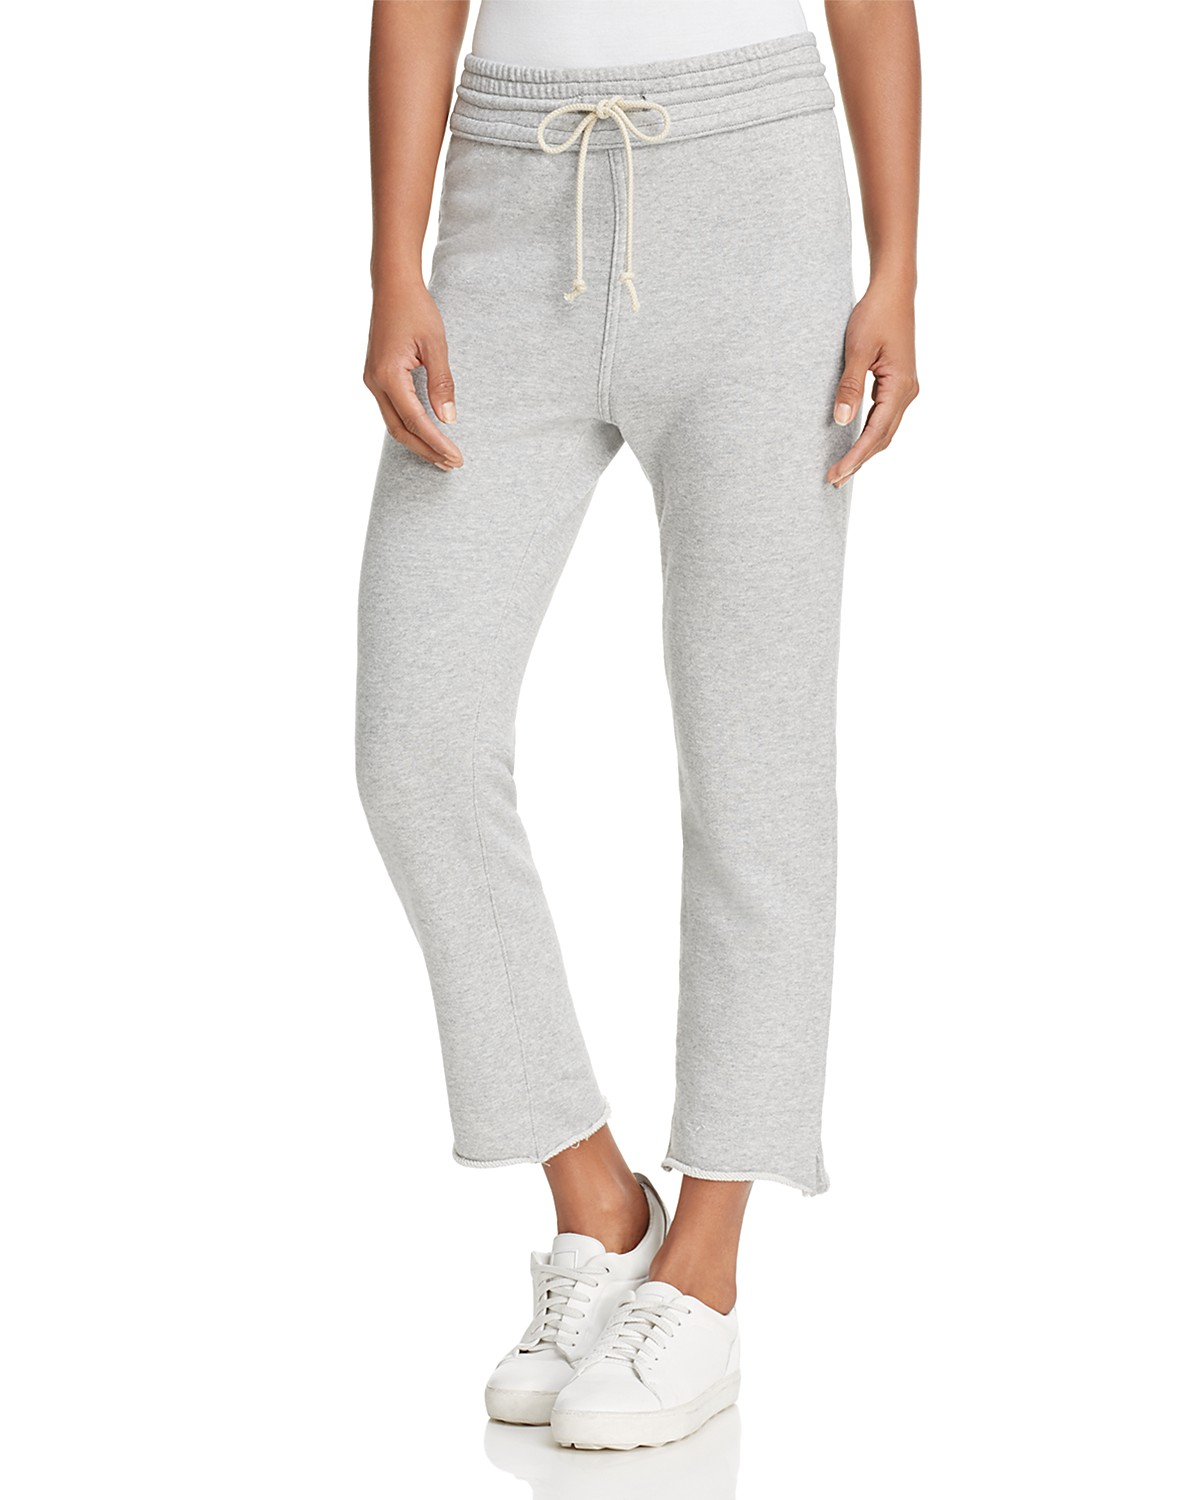 mother sweatpants